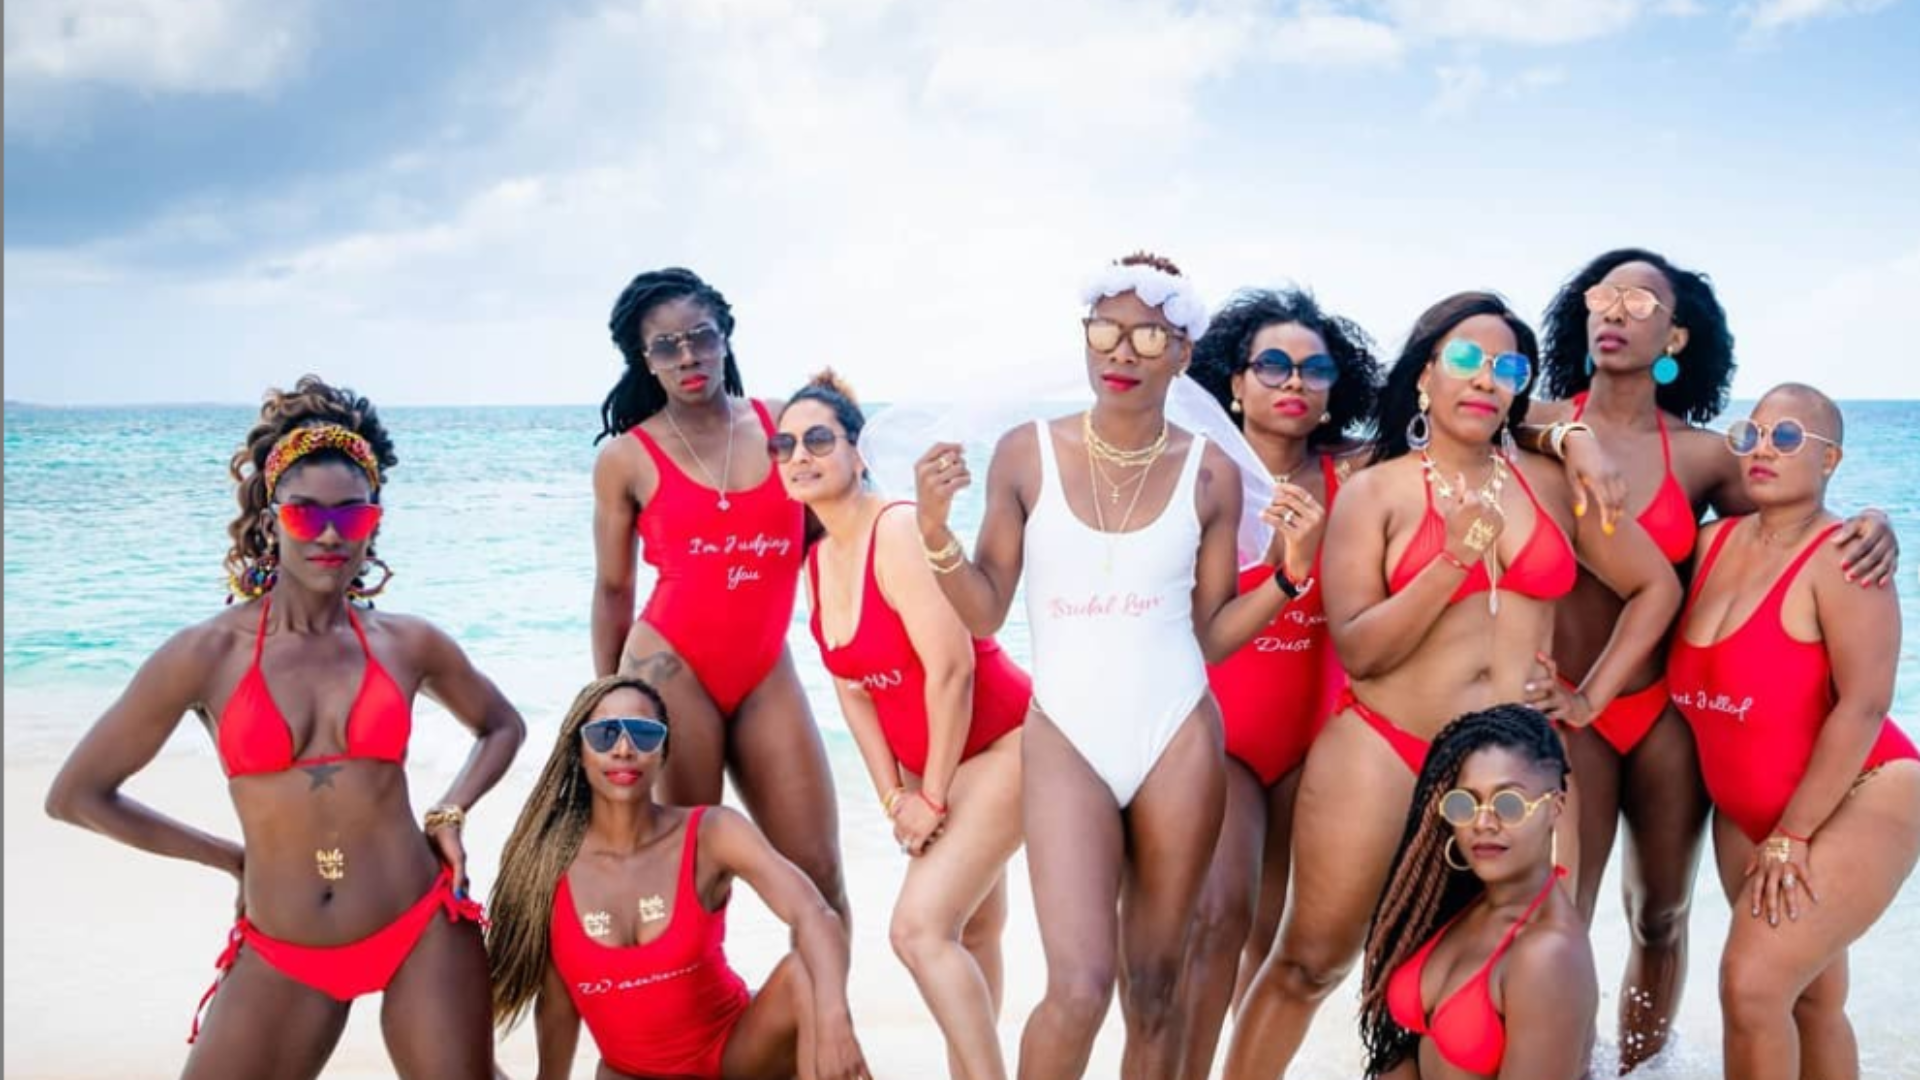 Culture Critic and Author Luvvie Ajayi's Bachelorette Trip To Anguilla Gave Us Major Squad Goals